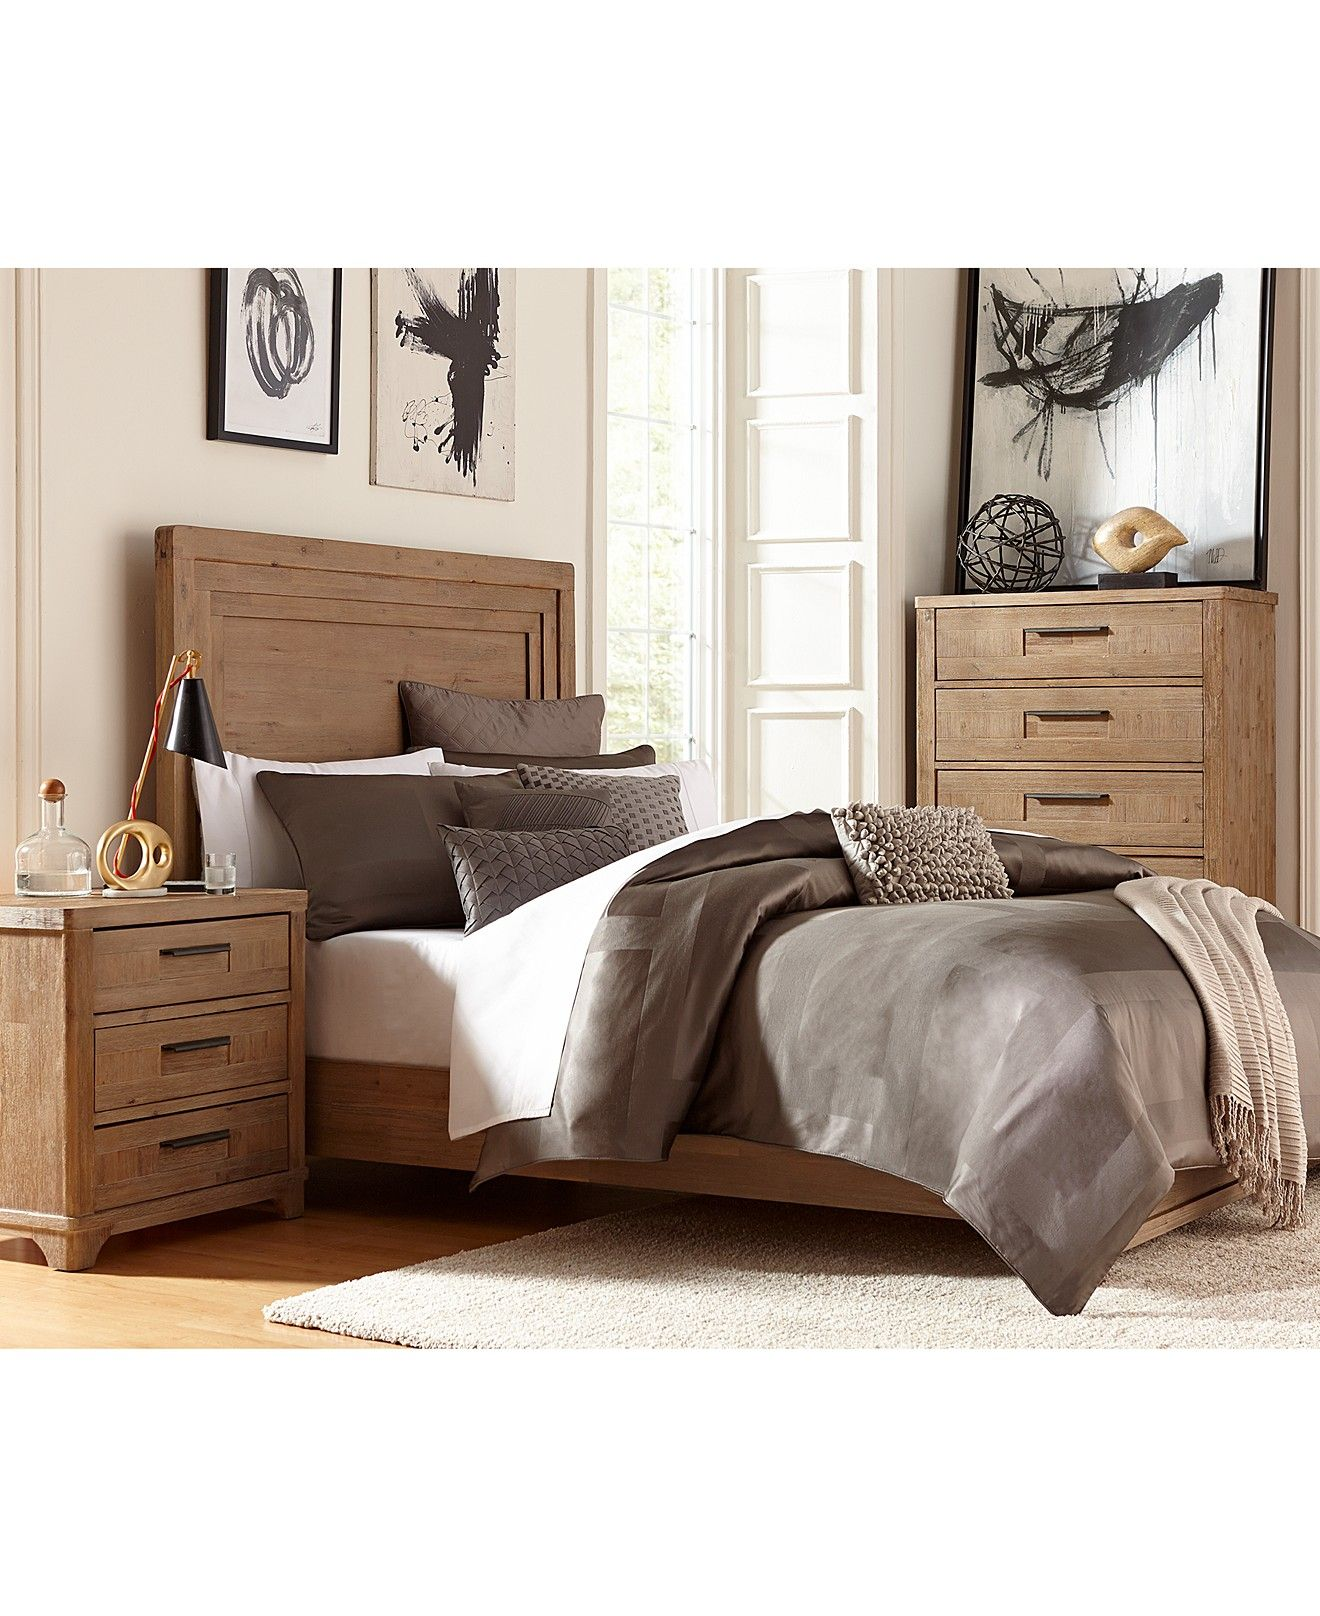 summerside  piece queen bedroom furniture set with chest  shop  - bedrooms